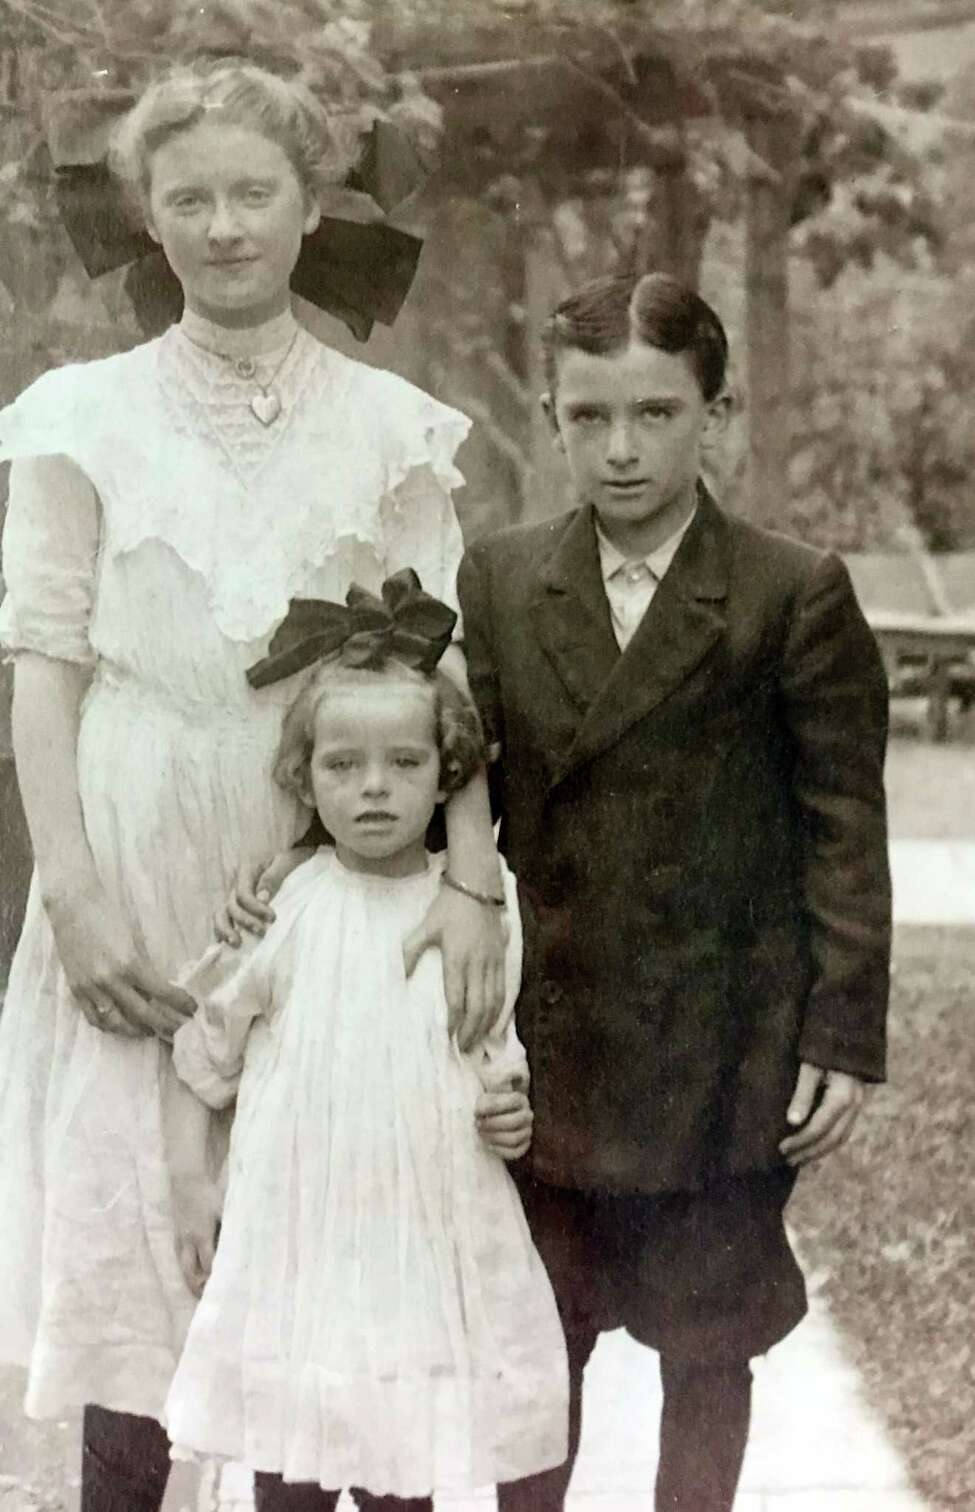 WWI hero and Troy High School alum Jack Callahan joins his sisters for a family photo. The smaller girl on his left is the grandmother of Lisa Karam, who has appealed to U.S. Secretary of Defense Jim Mattis to honor Callahan's valor posthumously. Callahan was killed at age 18 in a battle to defend Paris. He continued advancing into enemy machine gun fire after being mortally wounded. (Provided by family)